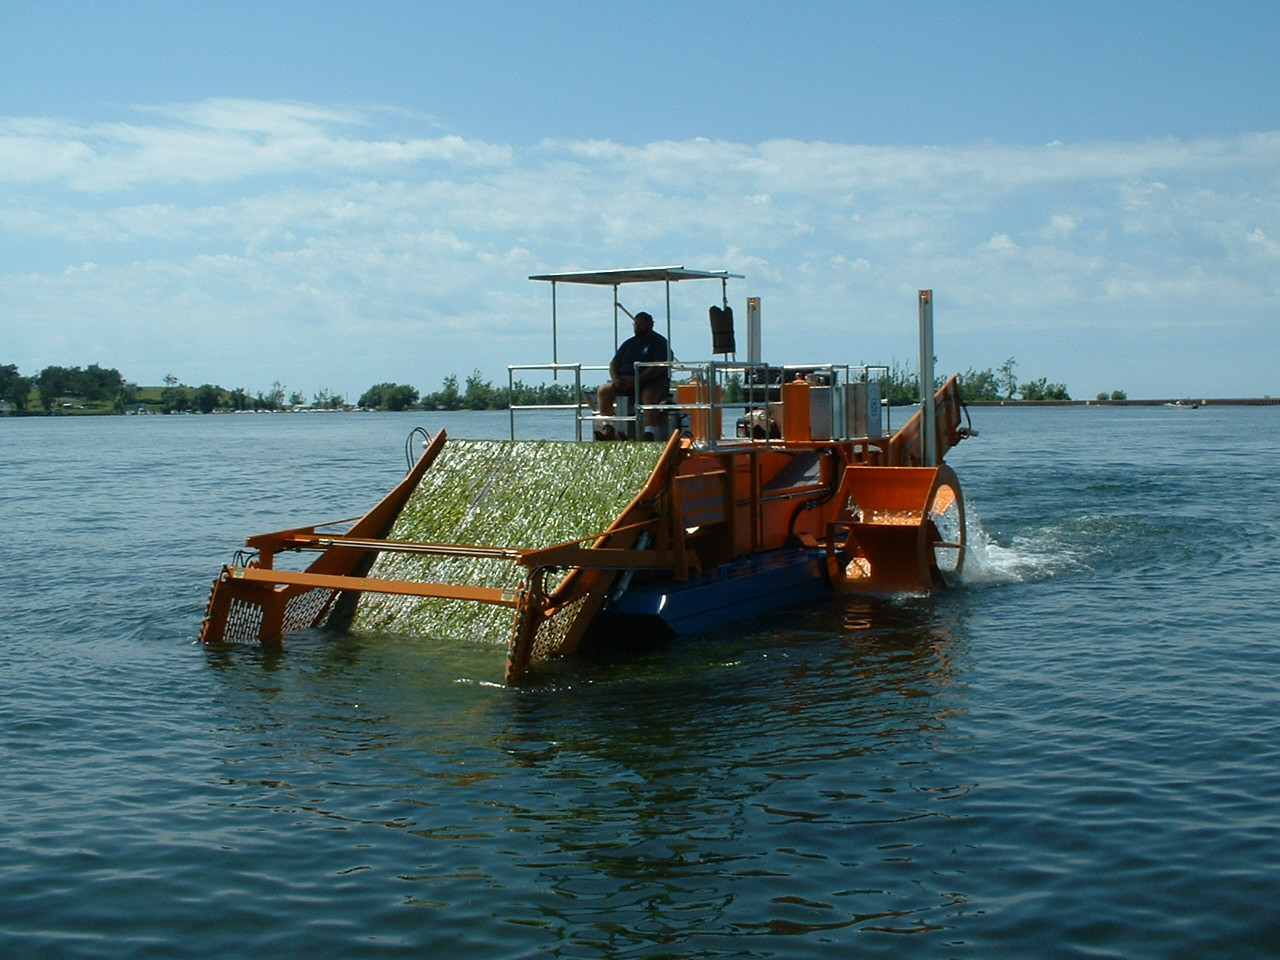 Alphaboats FX-11 Waterweed Harvester rolling weeds up its wide cutting conveyor